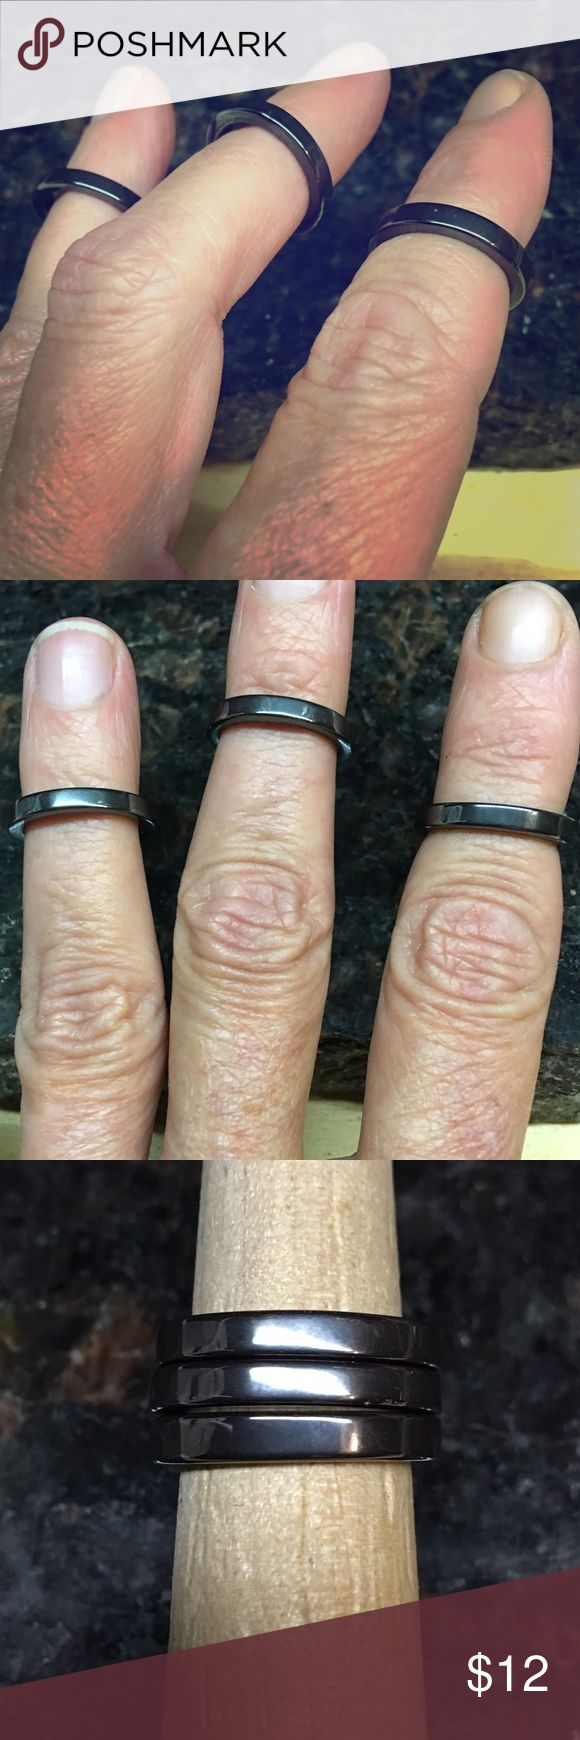 Set of 3, genuine hematite knuckle rings Set of 3 genuine hematite rings. Small rings size 4.5 fit on your top knuckle or pinky. Wear all three together or on different fingers. Genuine Hematite Jewelry Rings